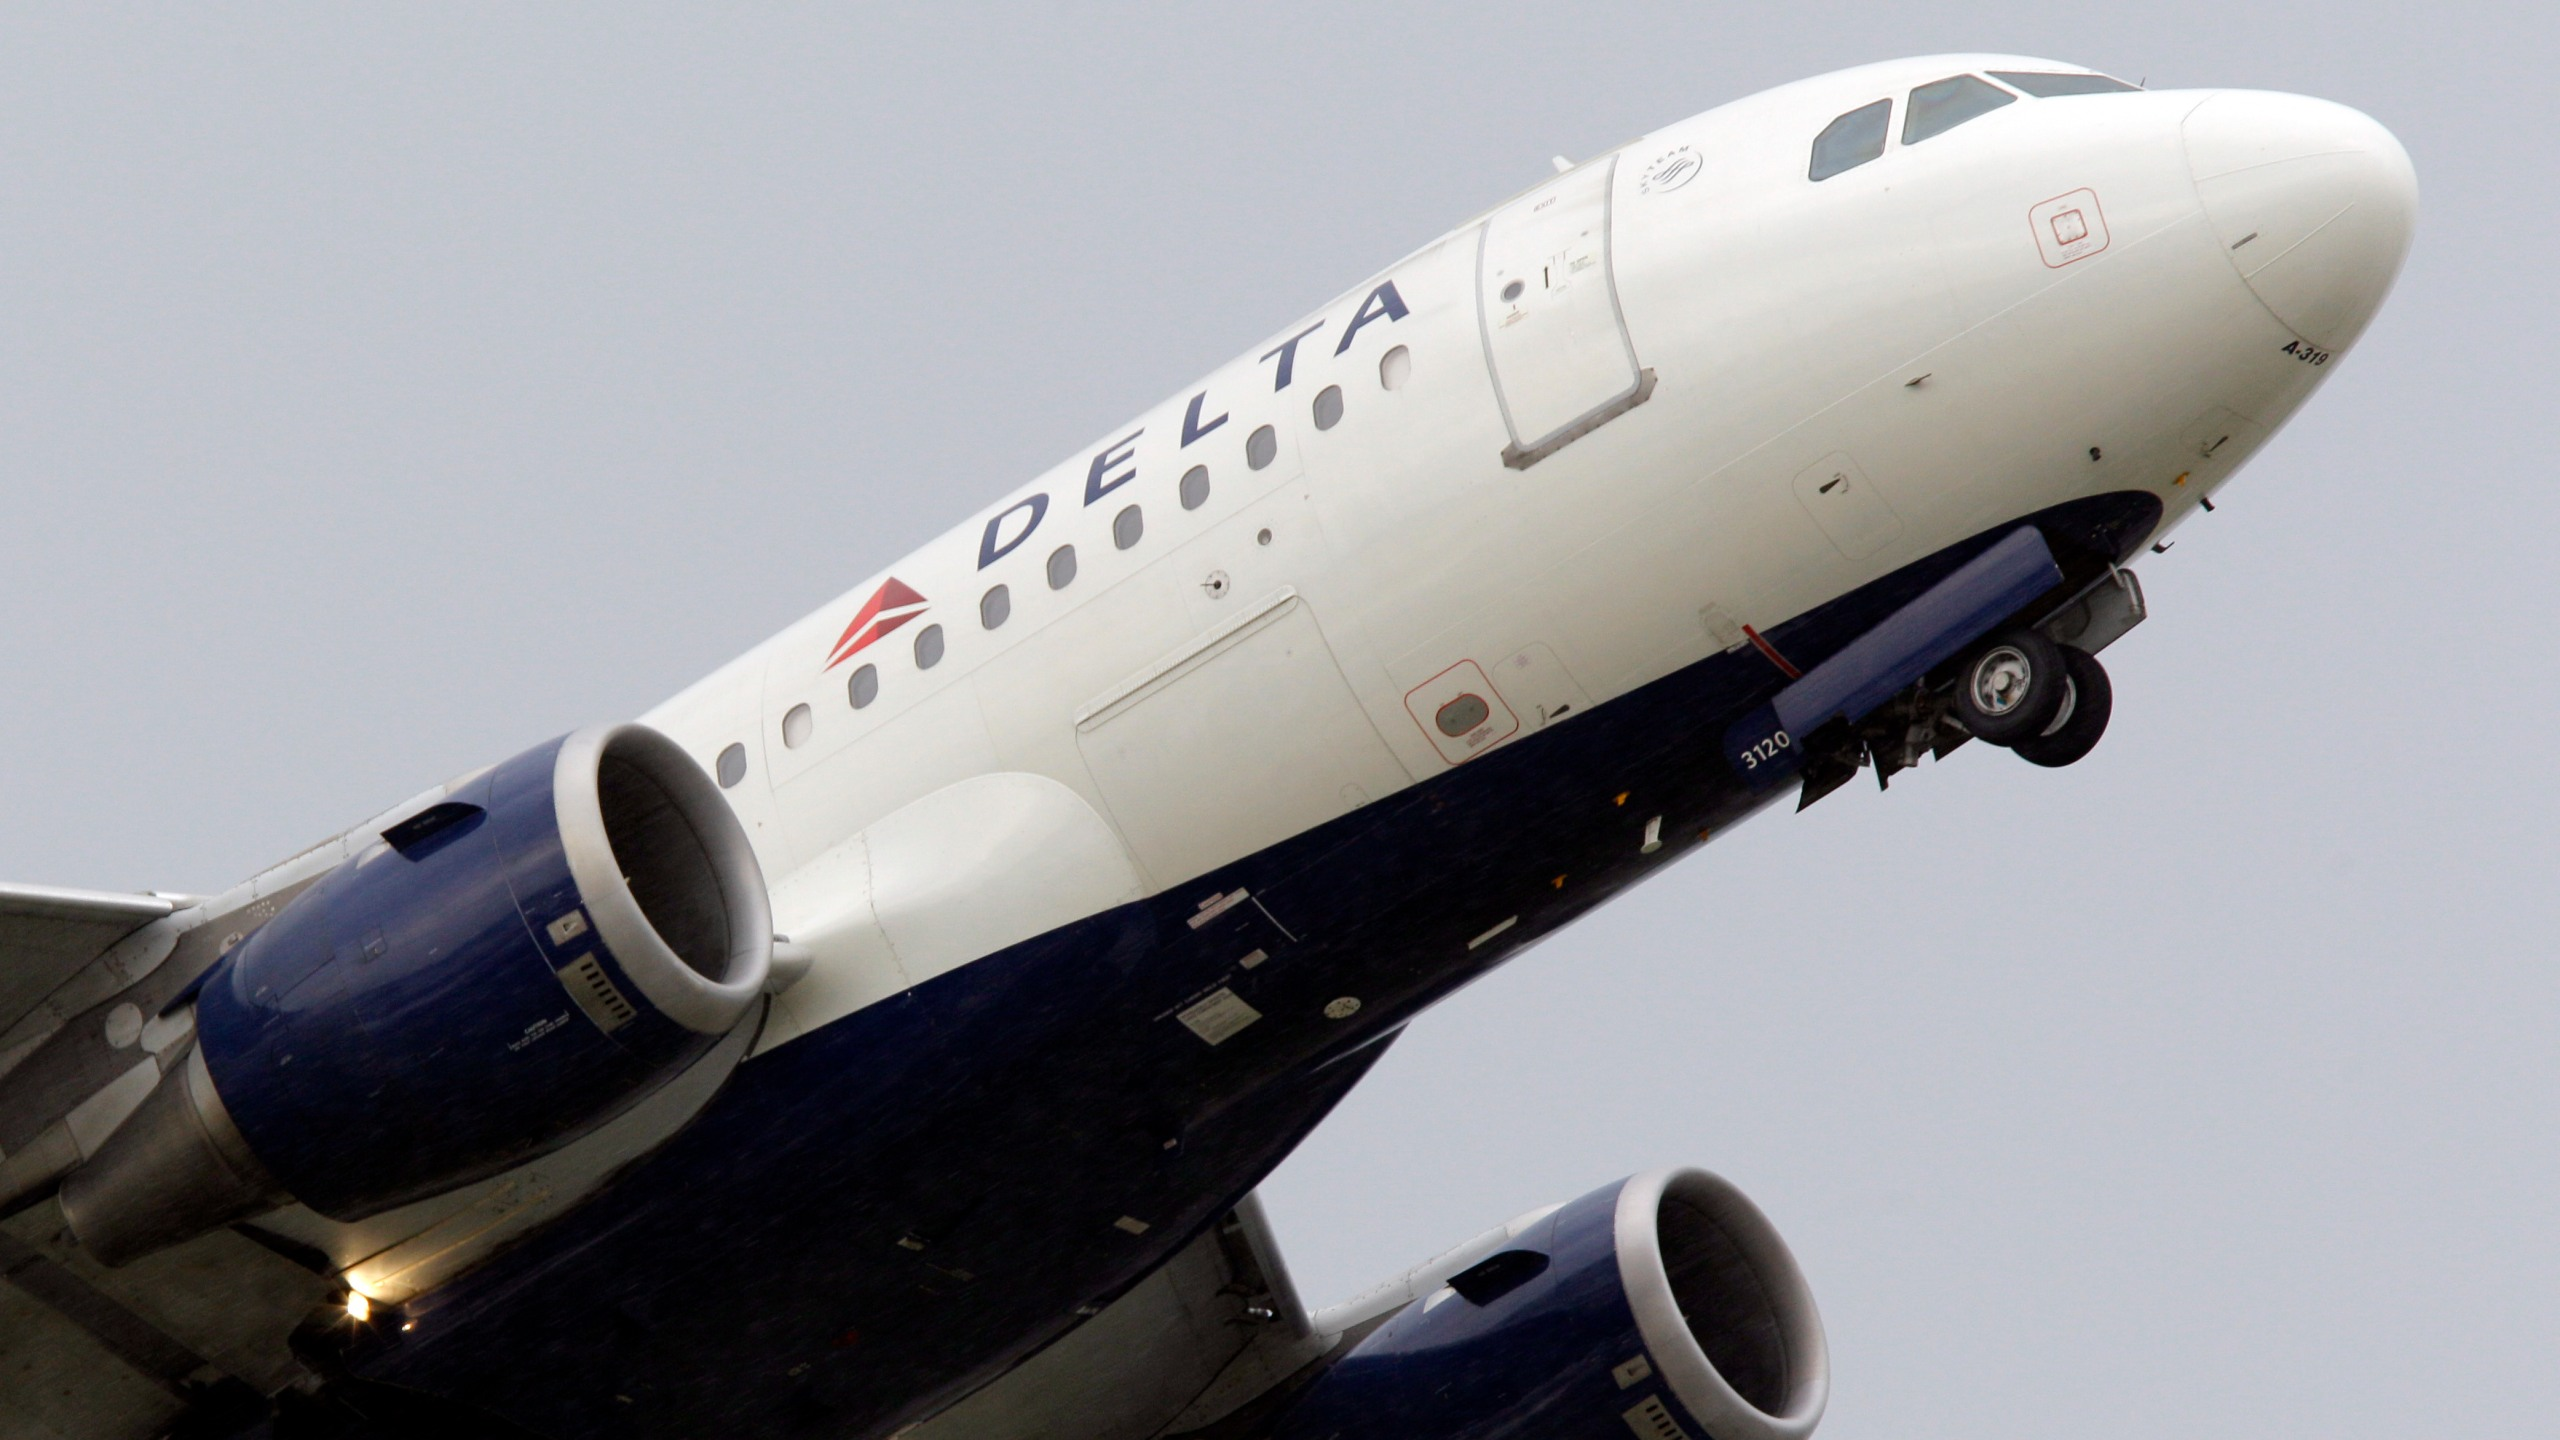 Earns Delta Air Lines_1545851768741-842137442